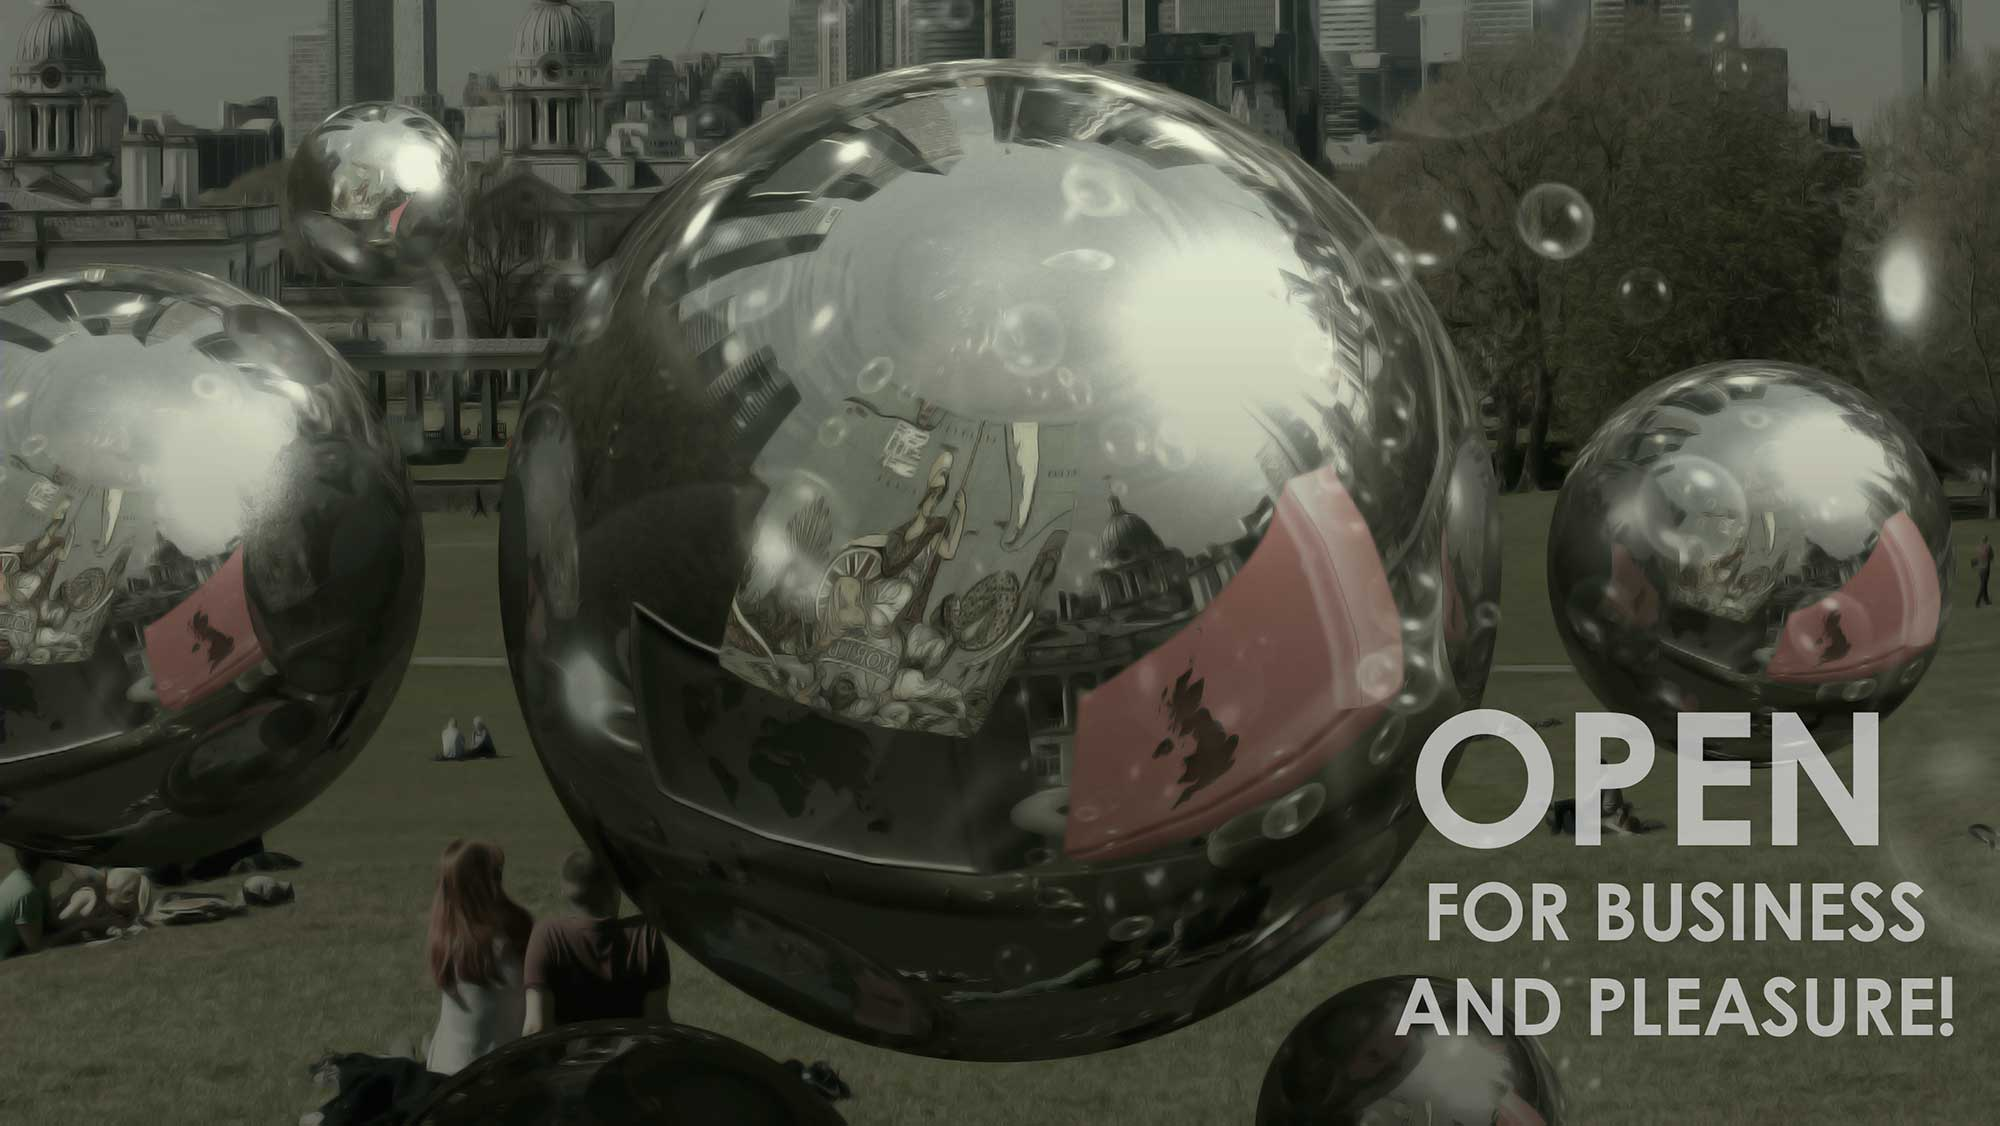 United Kingdom and world map floating inside of the chrome orbs